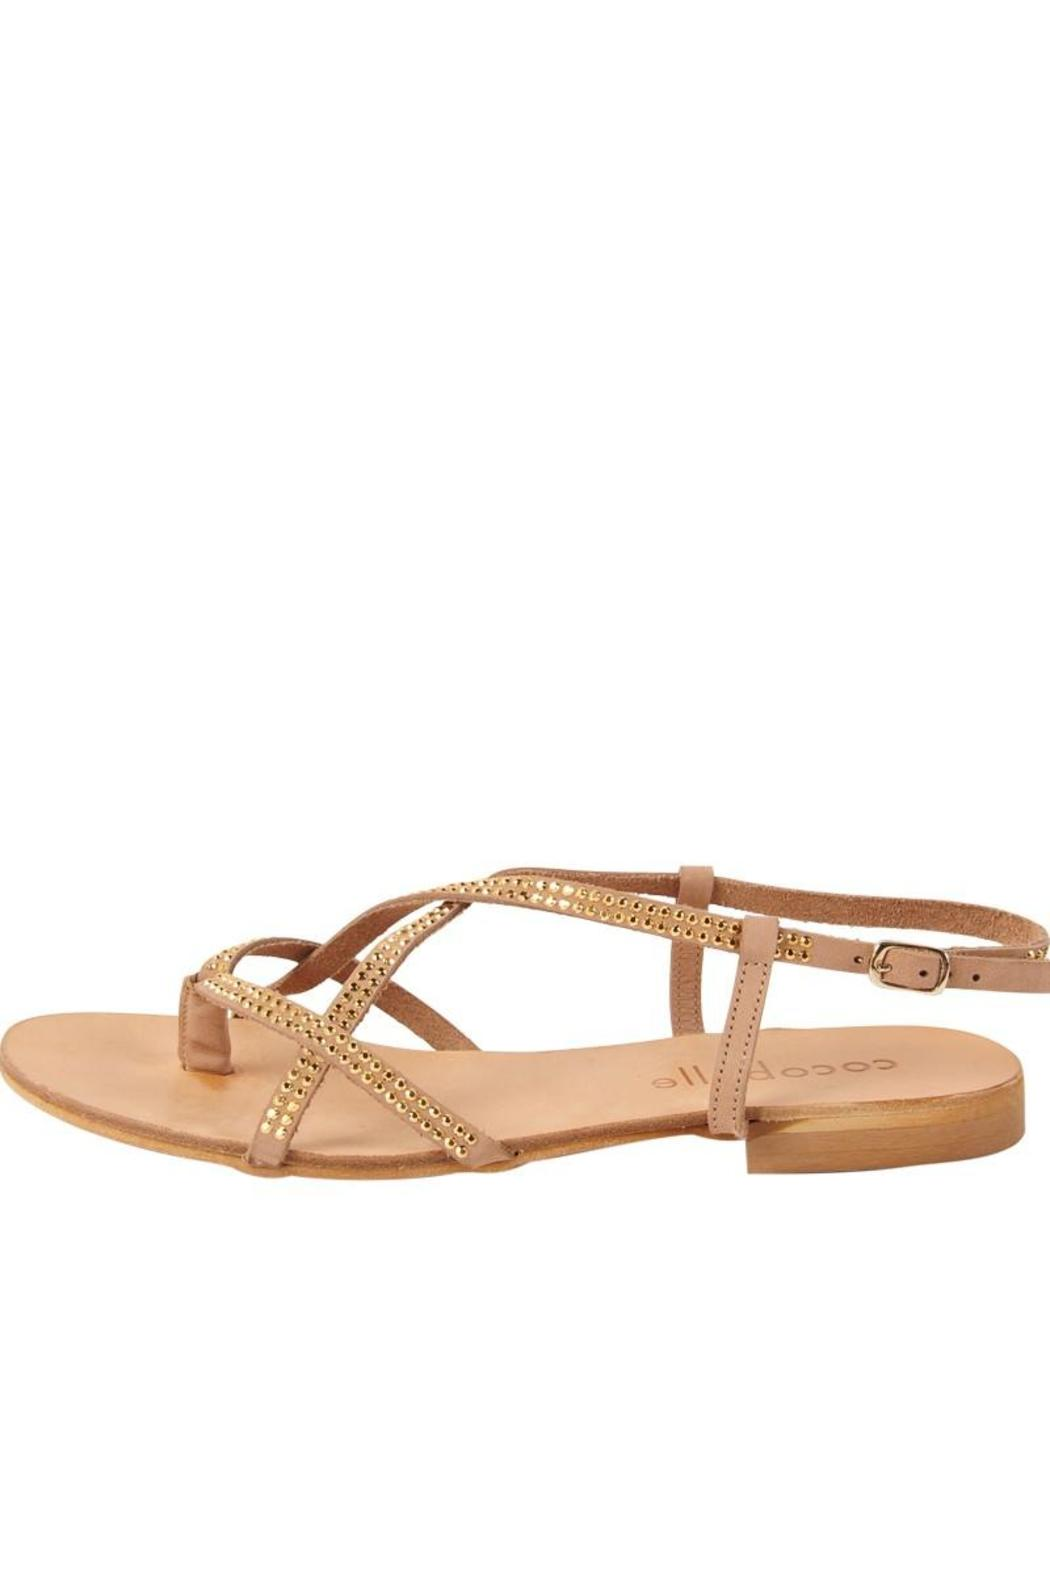 Cocobelle Vera Studded Gold Sandals From Hudson Valley By